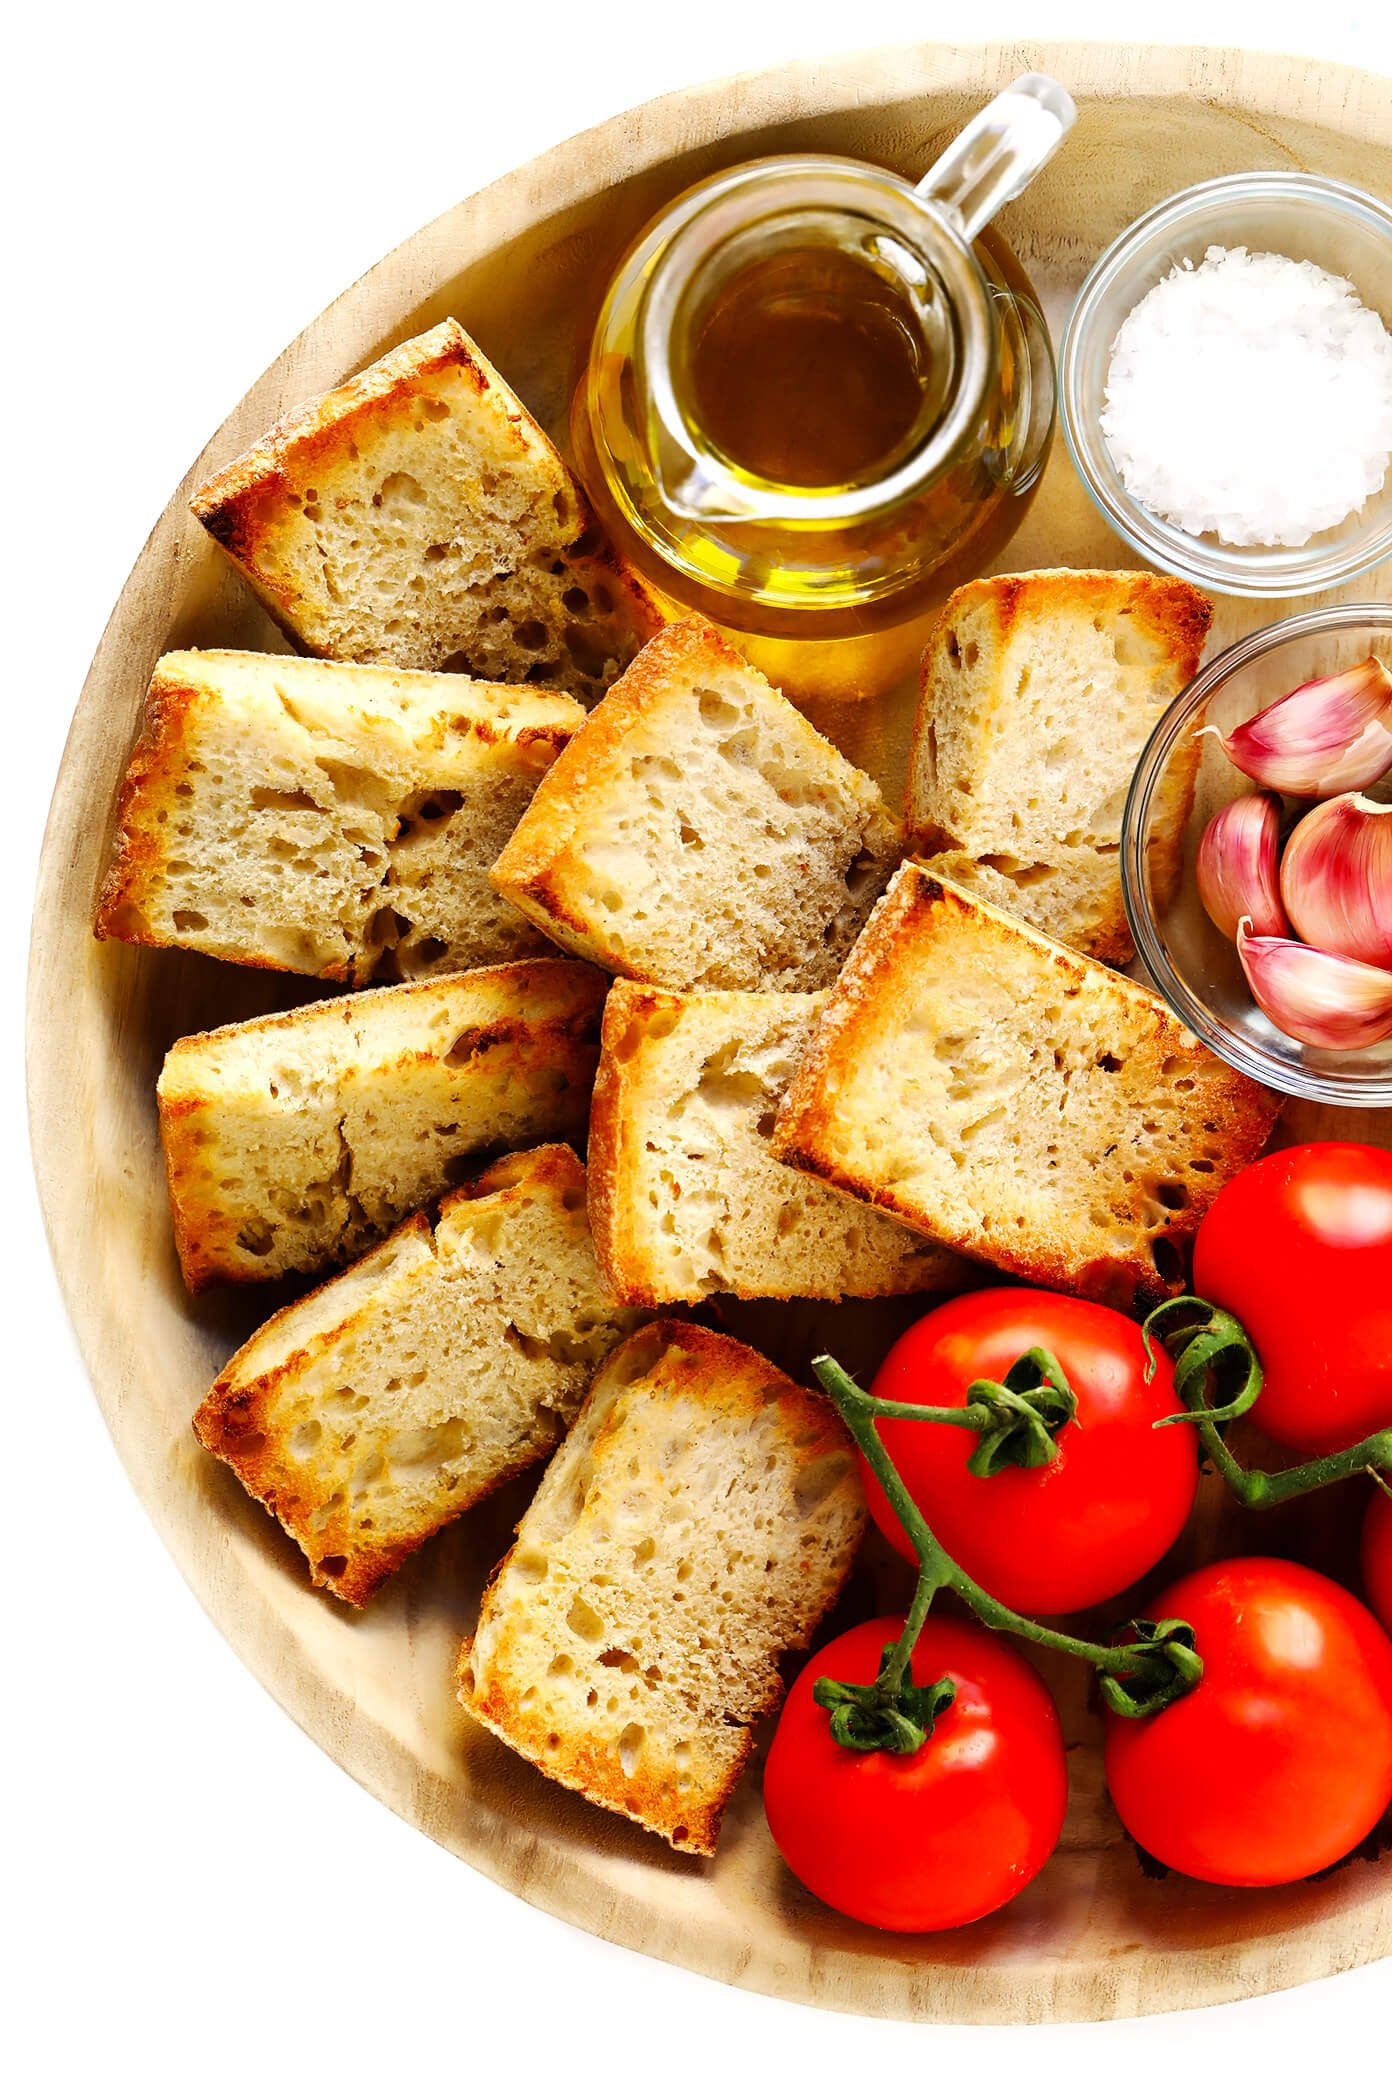 Tomato Bread (Pan Con Tomate) Ingredients